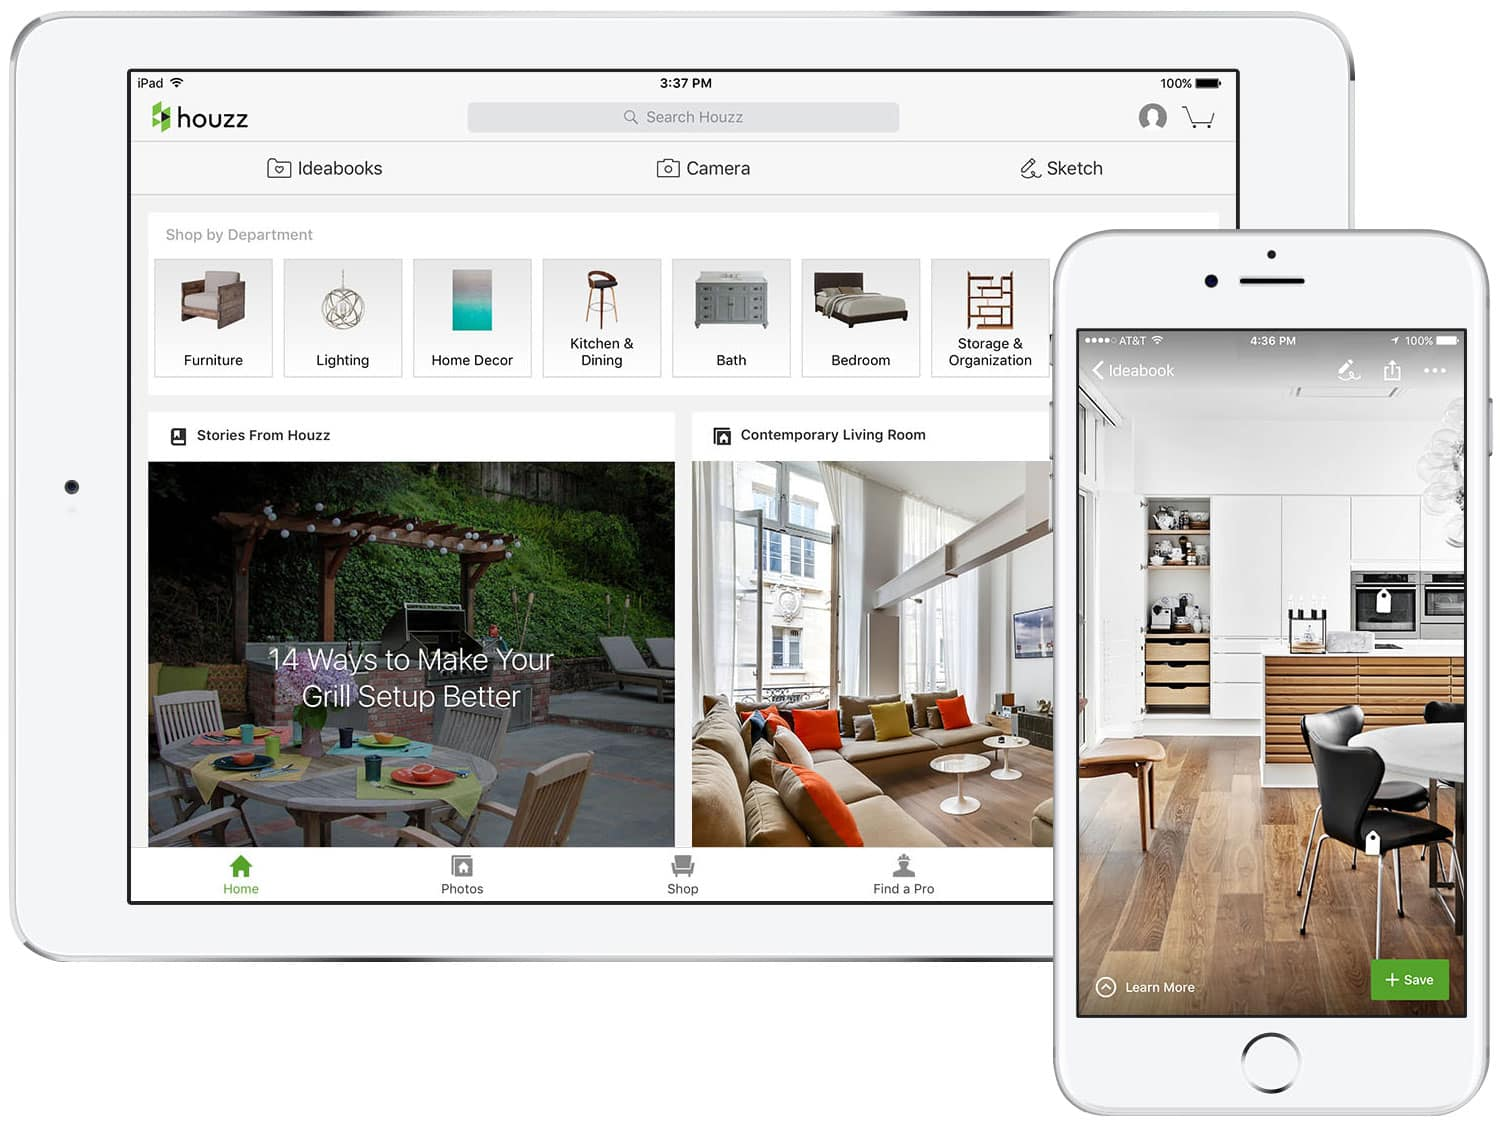 Interior Design Apps  17 Must Have Home Decorating Apps for Android     Houzz is  arguably  the mother of all design apps     CNN once called it the     Wikipedia of interior and exterior design     Its database contains more  than 14